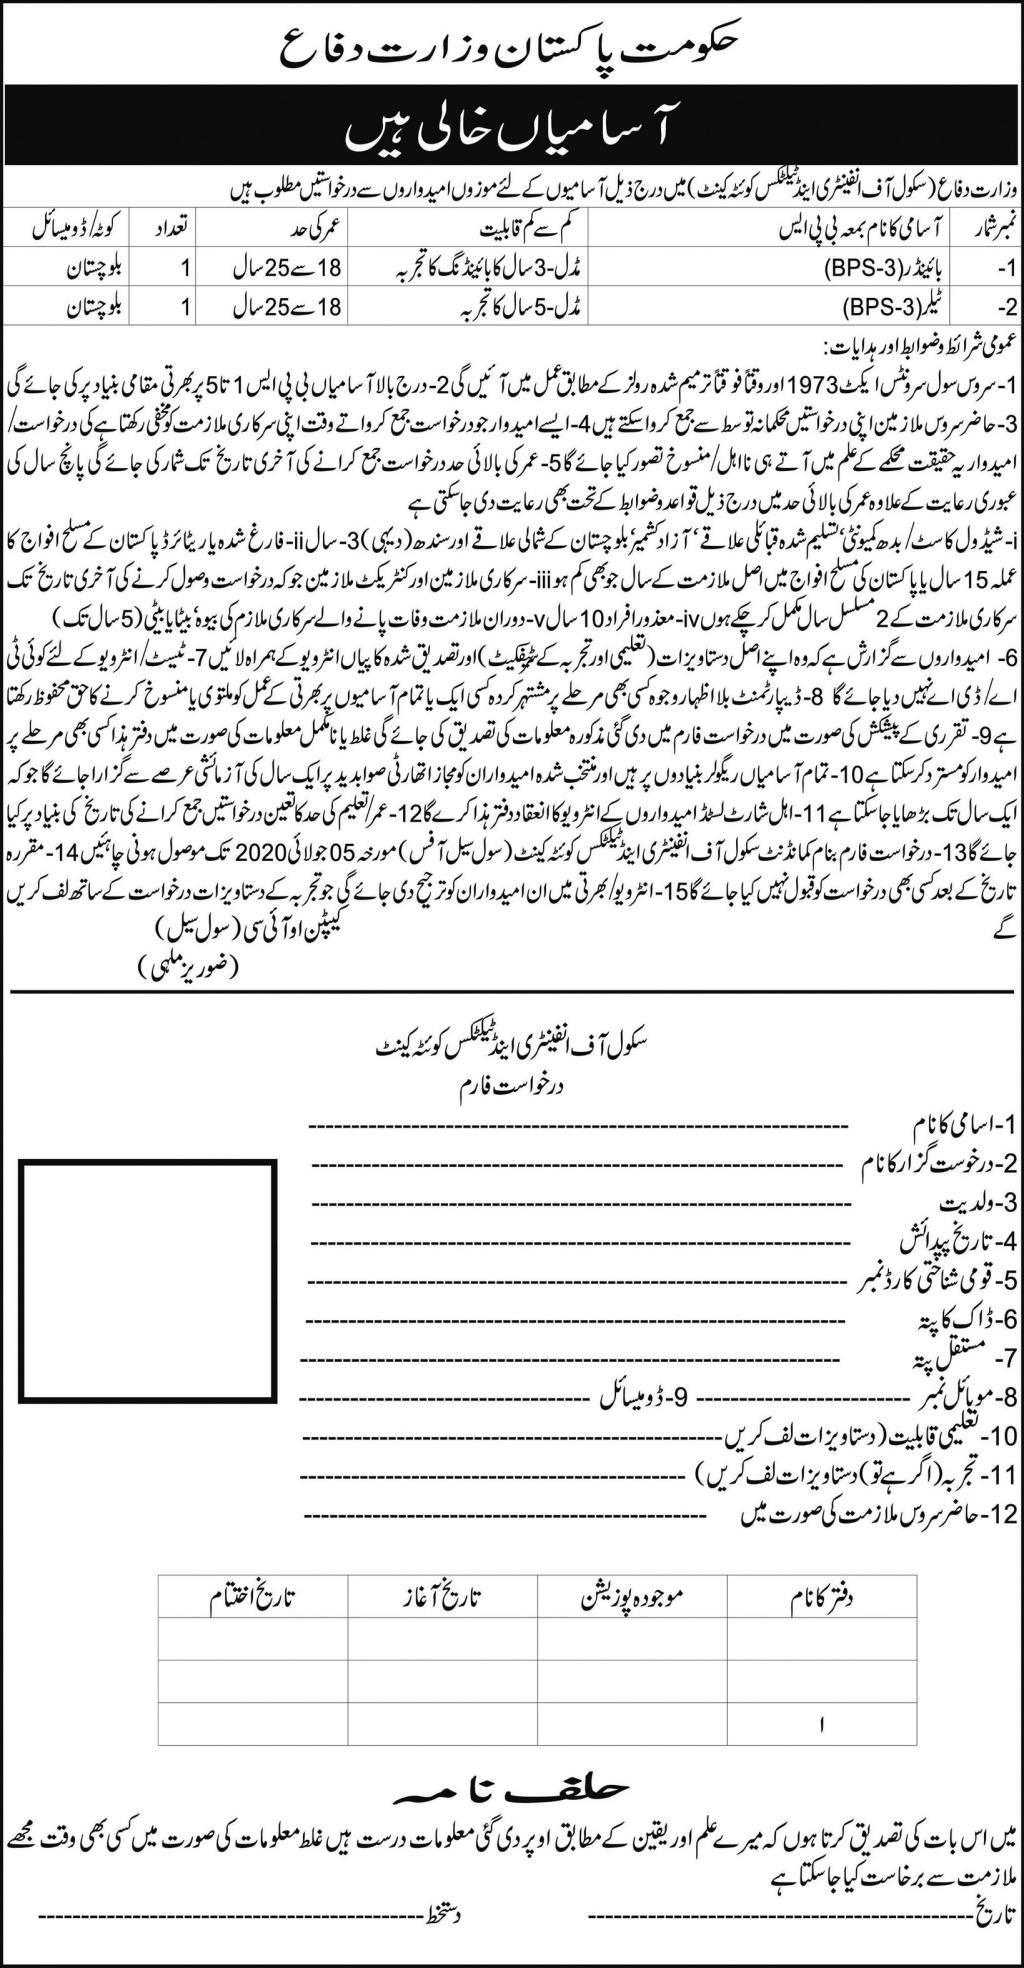 Ministry of Defence School of Infantry and Tactics Jobs 2020